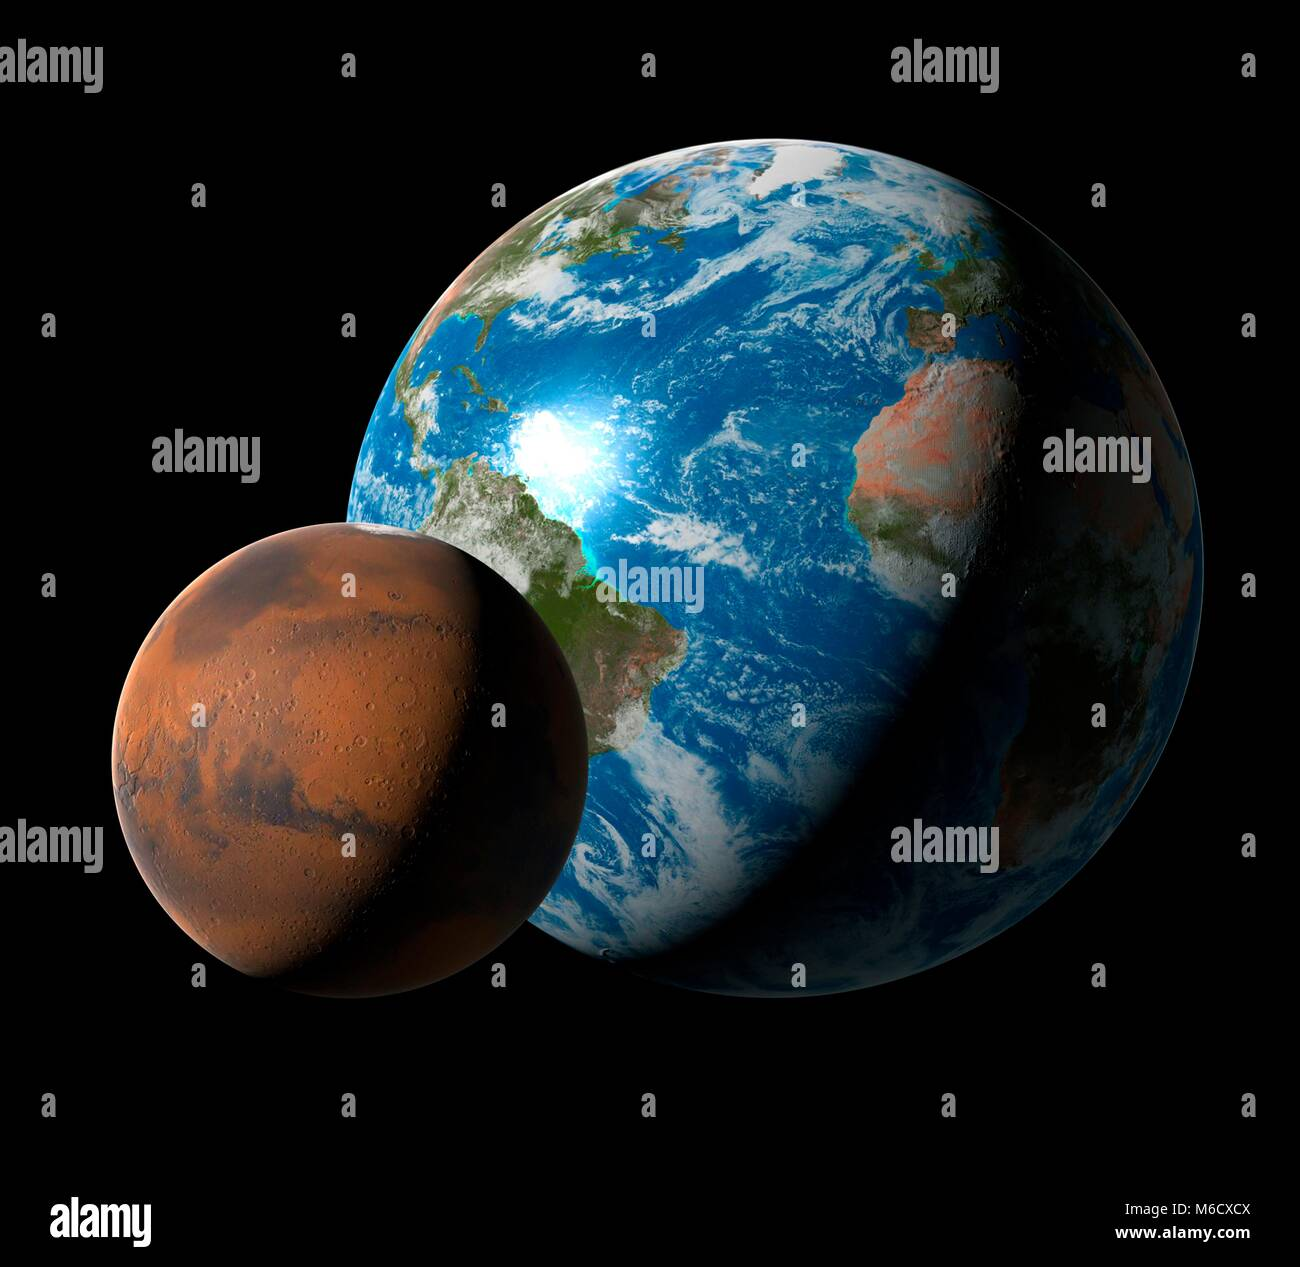 What is the diameter of Mars and how does it relate to the diameter of the Earth Diameter, mass and description of Mars